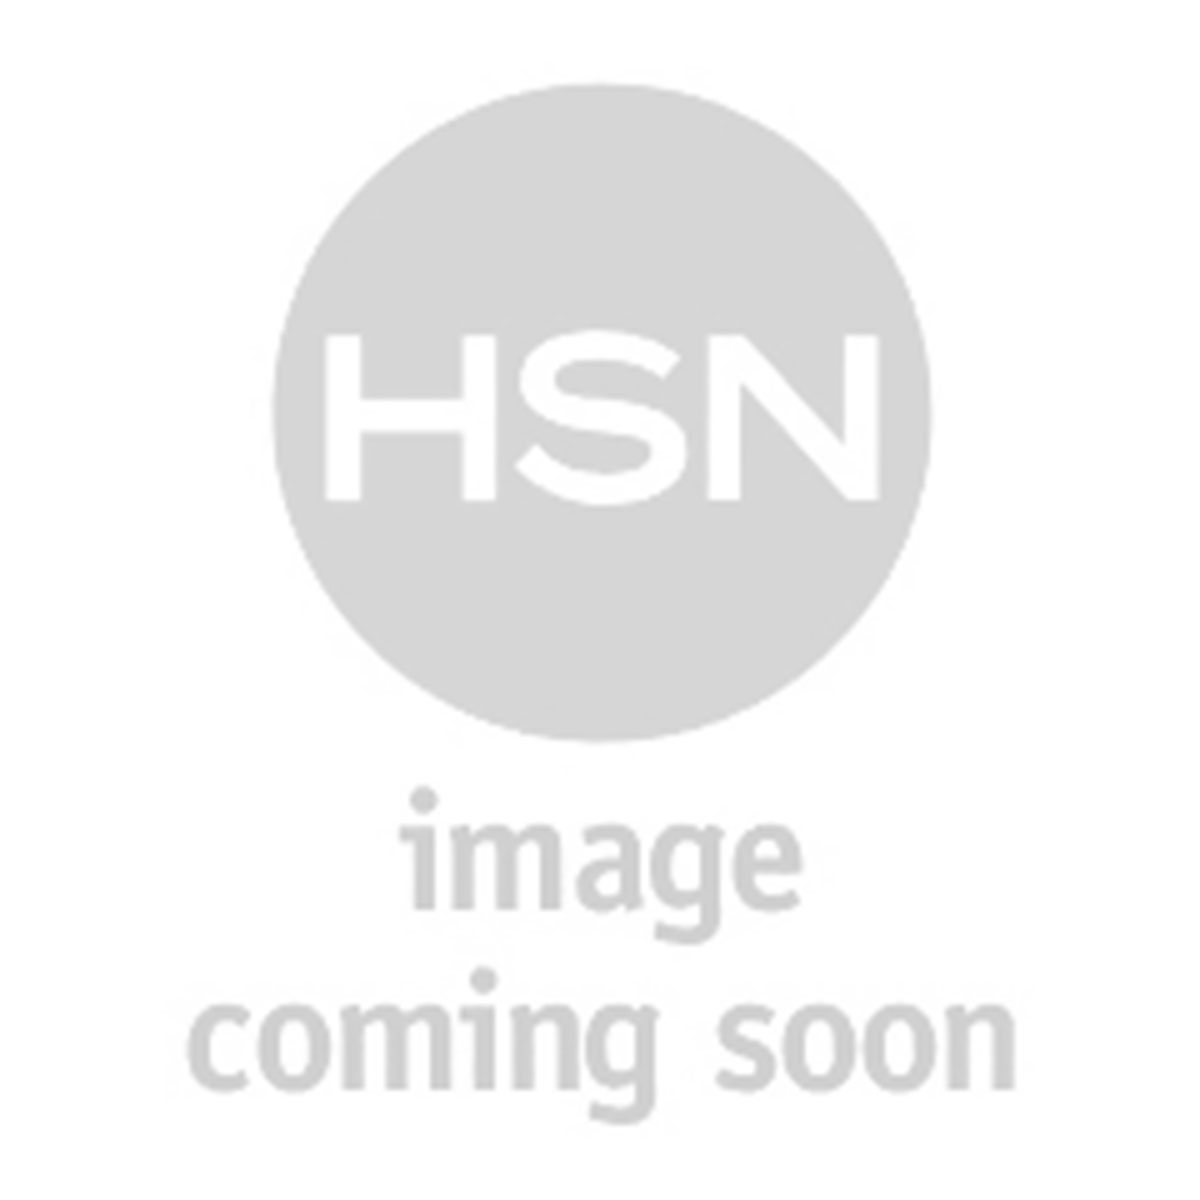 HSN Celluma HOME Light Therapy Device   Shop Your Way: Online Shopping & Earn Points on Tools. Appliances. Electronics & more